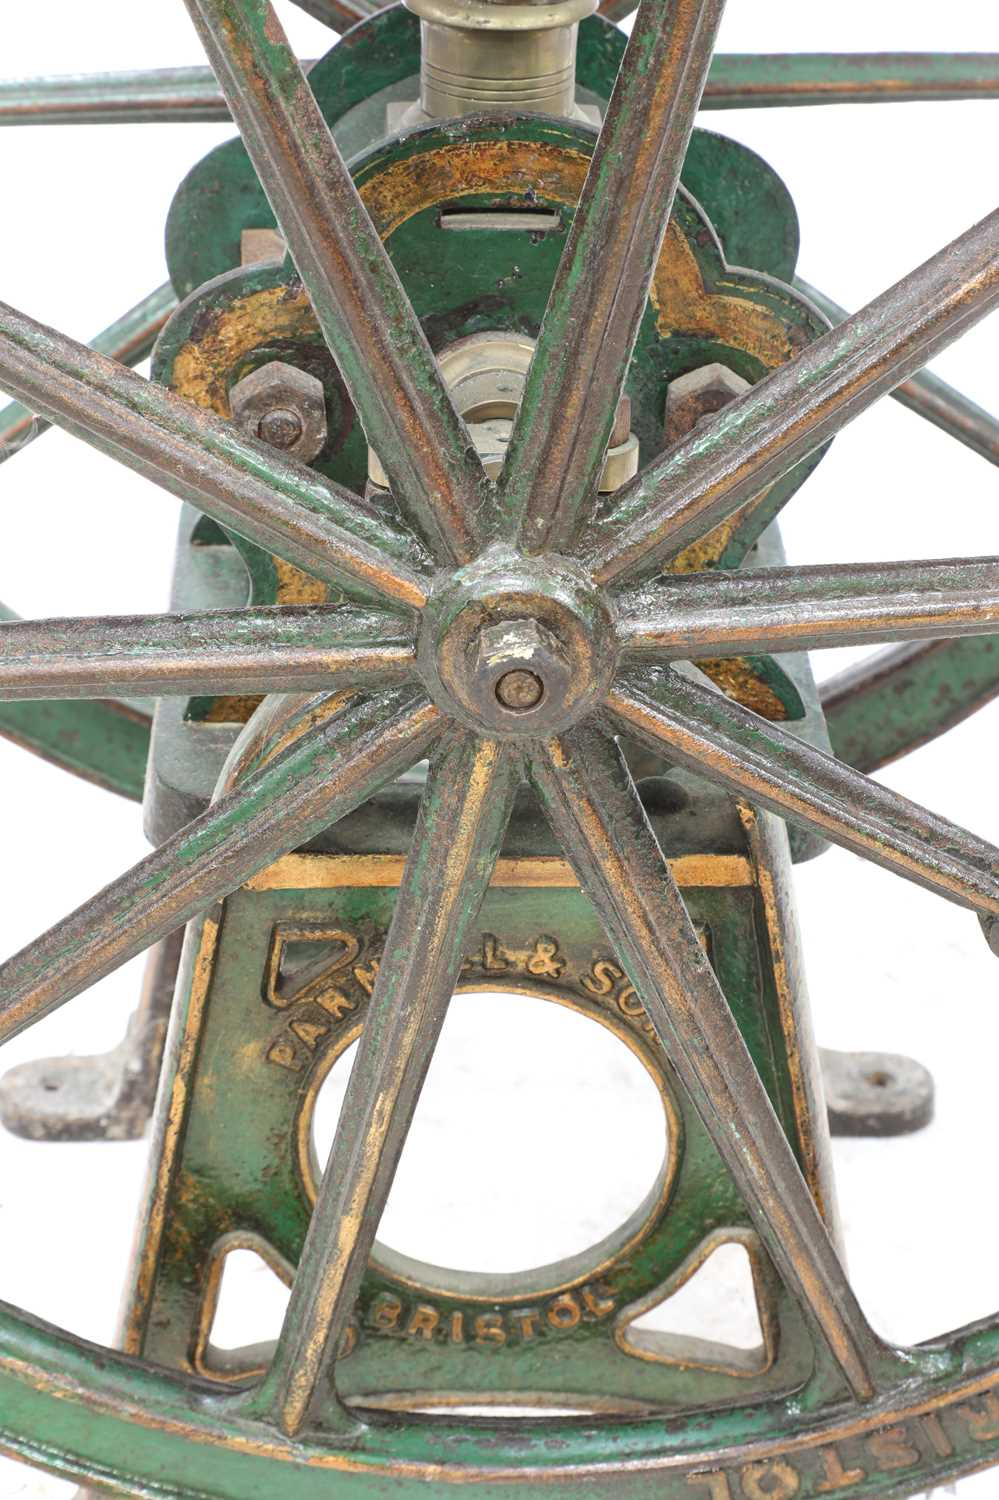 A large coffee grinder by Parnell & Sons, - Image 8 of 8